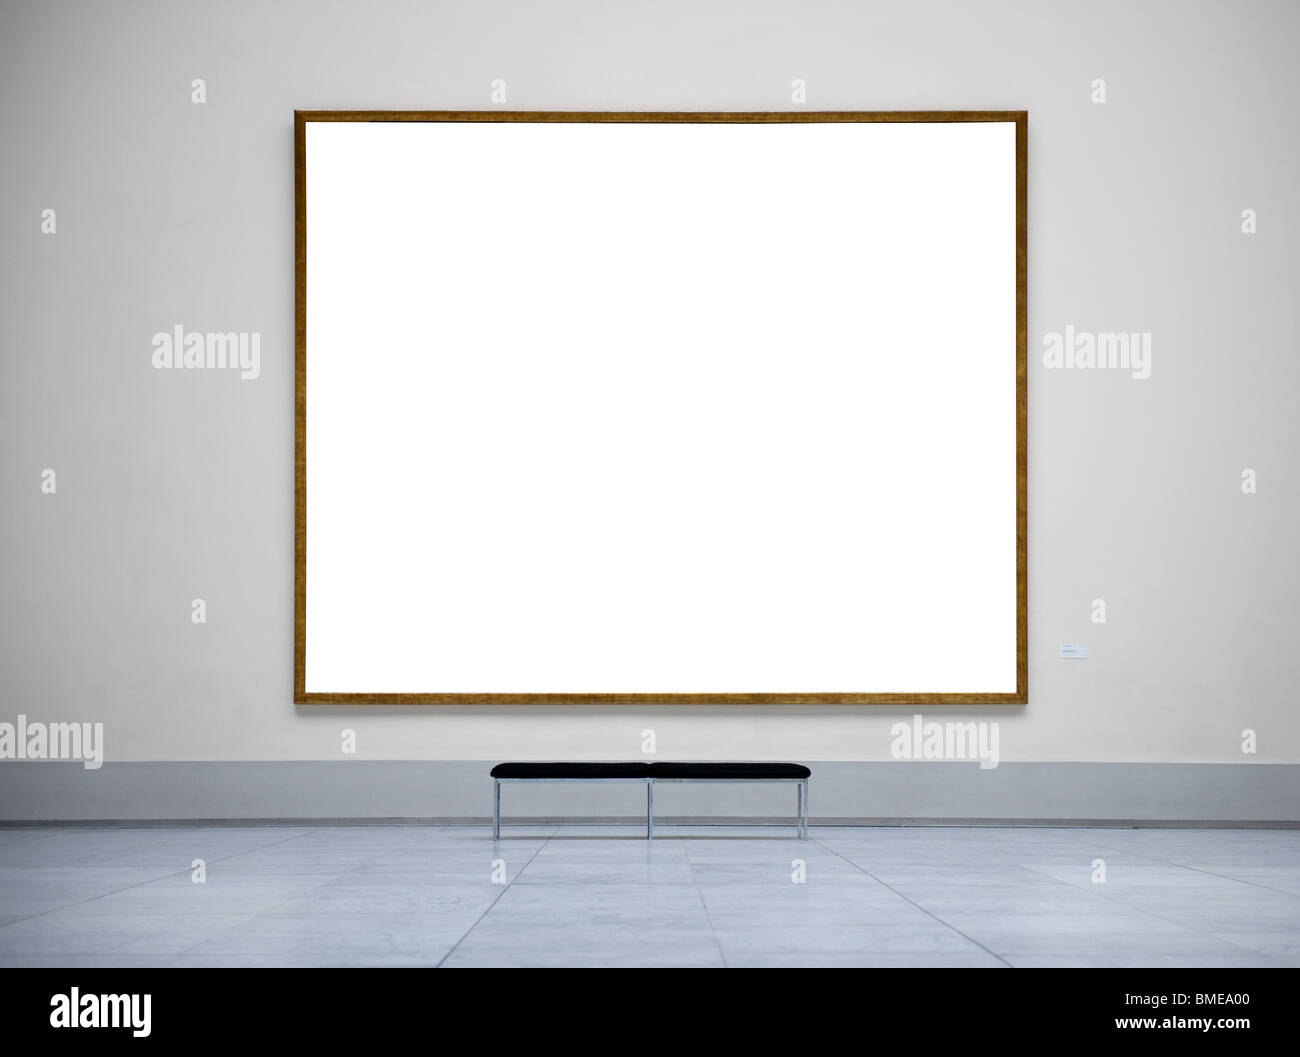 Empty frame in a museum Stock Photo: 29818656 - Alamy